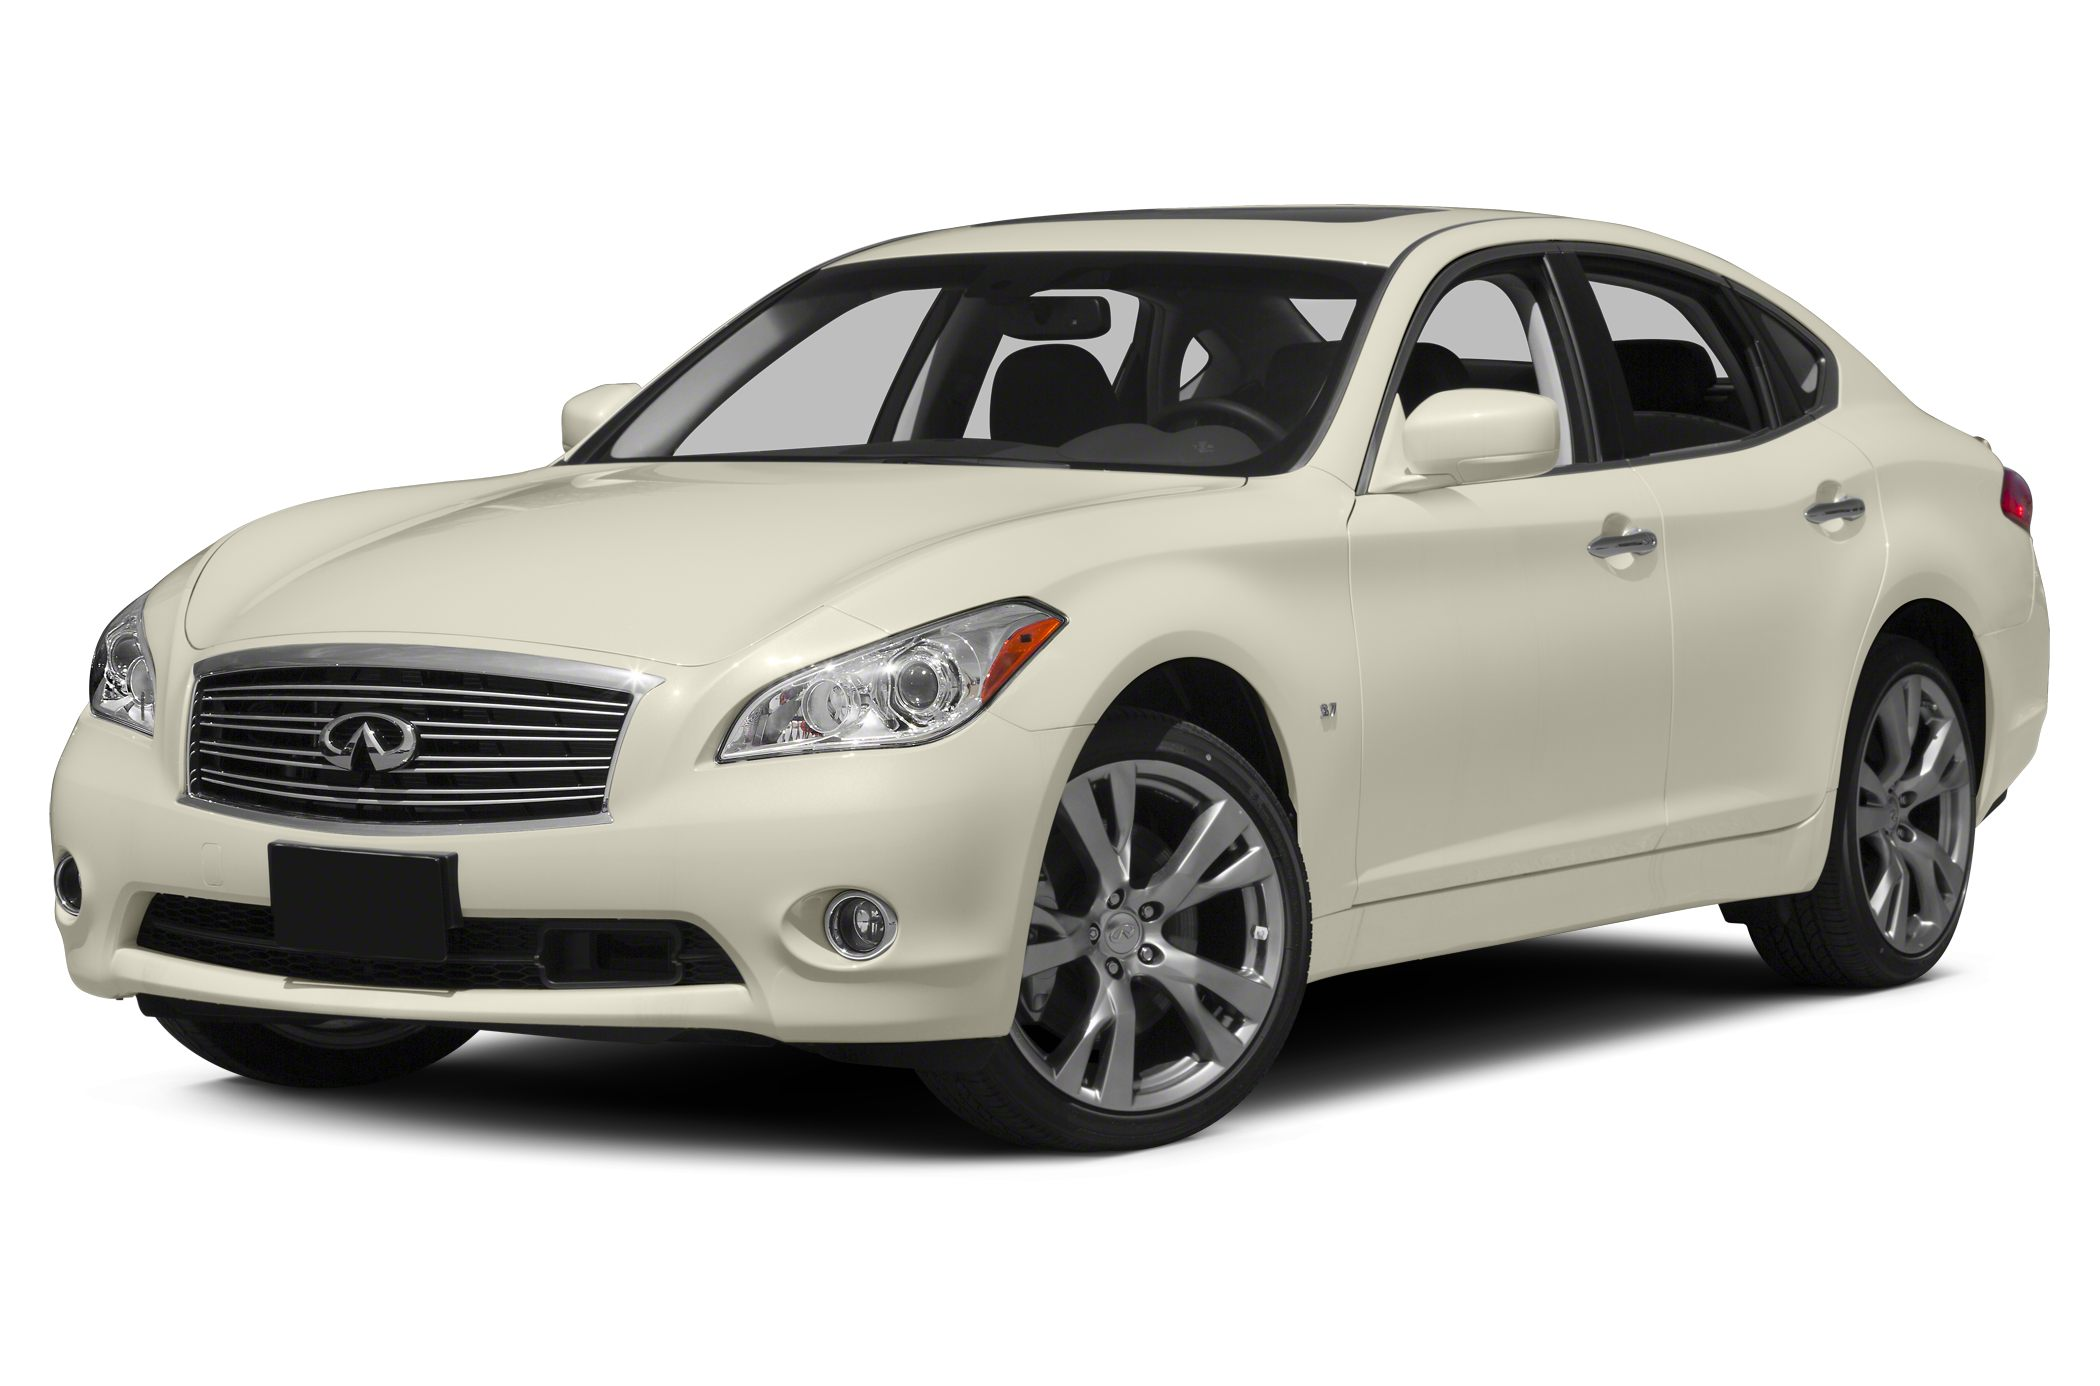 2015 Infiniti Q70 3.7X Sedan for sale in Alexandria for $53,550 with 0 miles